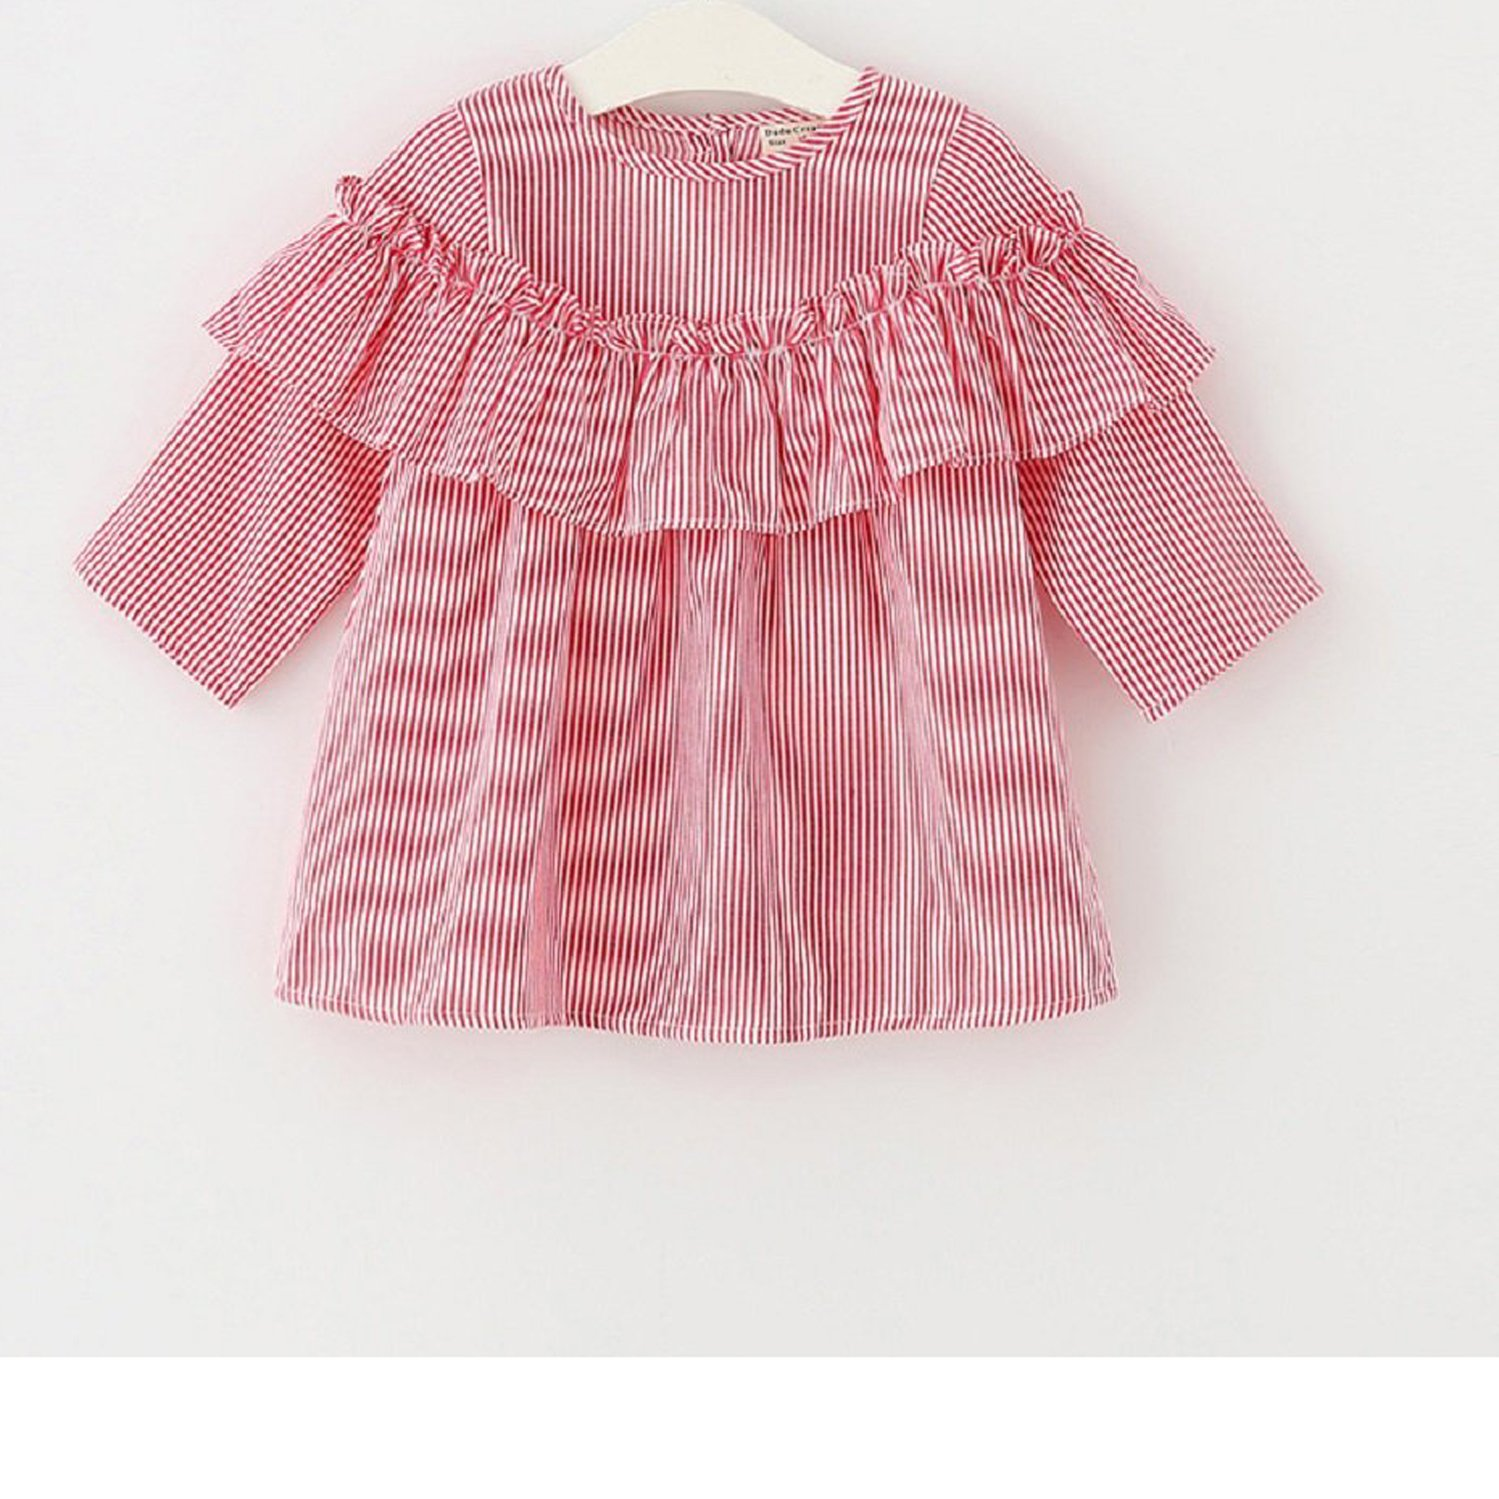 8e98bec121b16 Treafor Toddler Girls Striped Shirt Baby Girl Ruffle T-Shirt Infant Girl  Long Sleeve Blouse Top Outfit Clothes